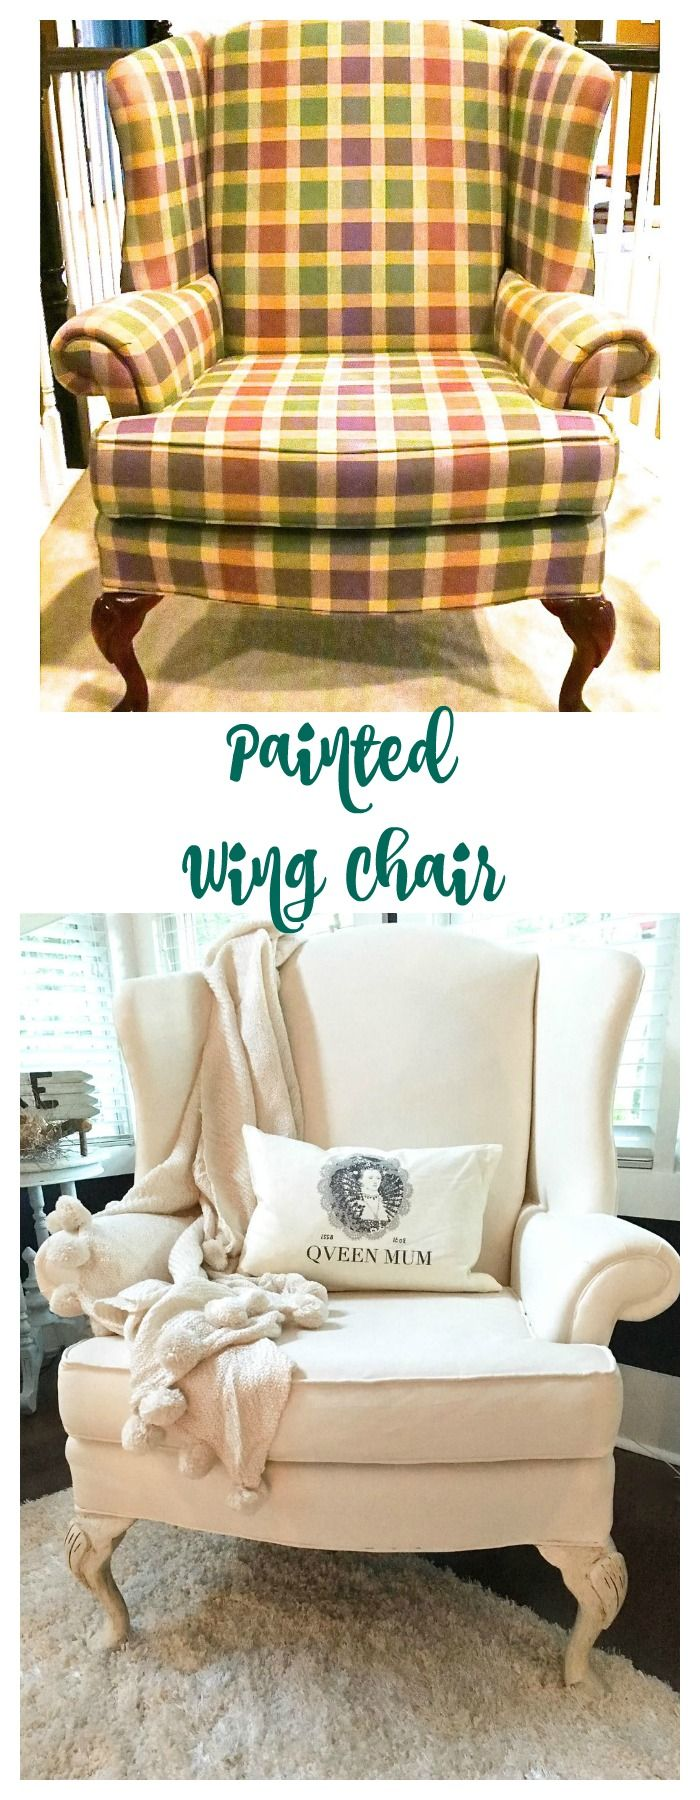 ***EXCELLENT How-To Tutorial for DIY painted upholstery  -- TIP: Mix 4 parts paint with 1 part water when painting fabric to keep it flexible.